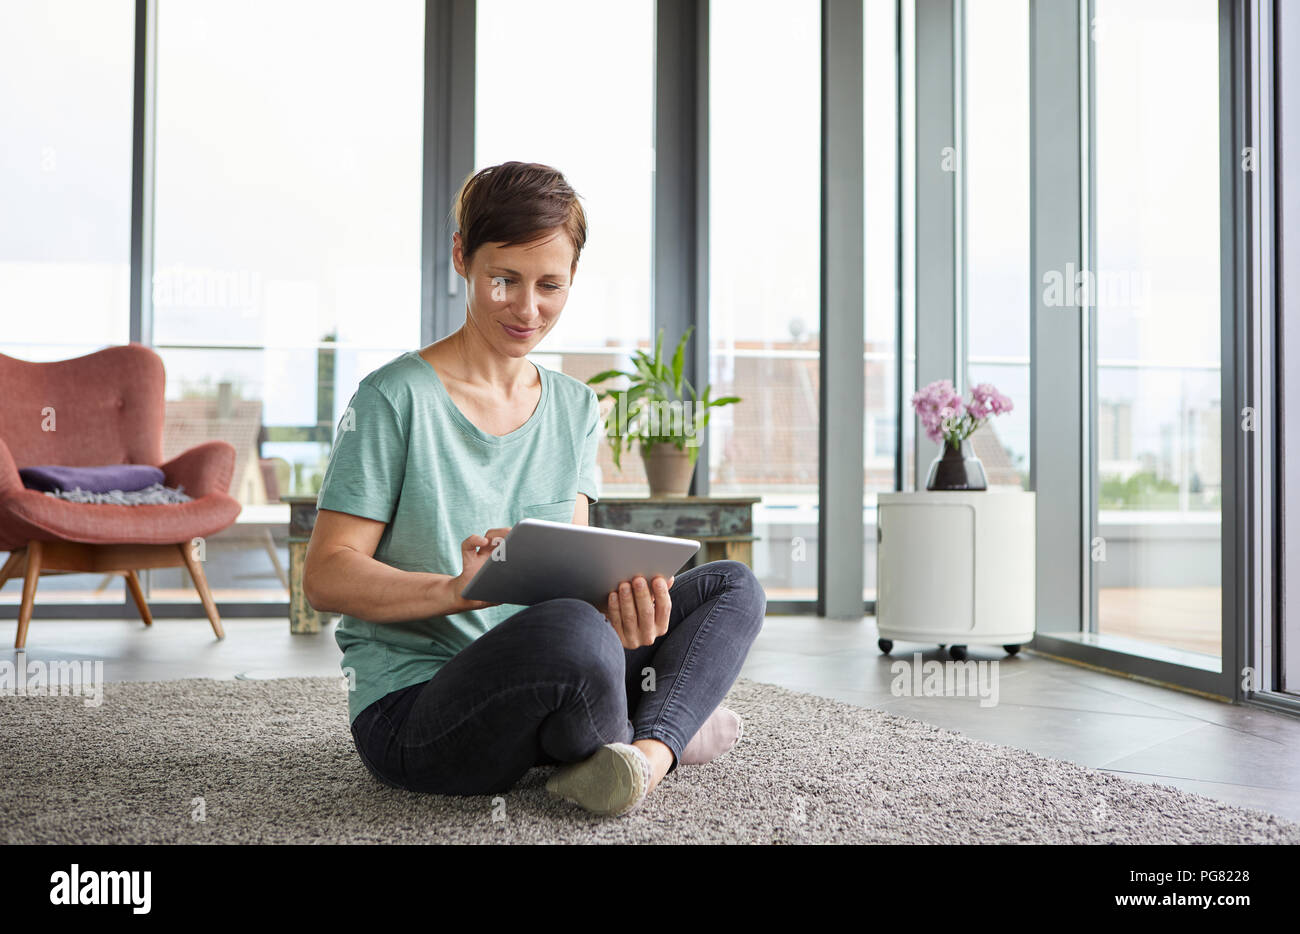 Woman sitting on the floor at home using tablet - Stock Image